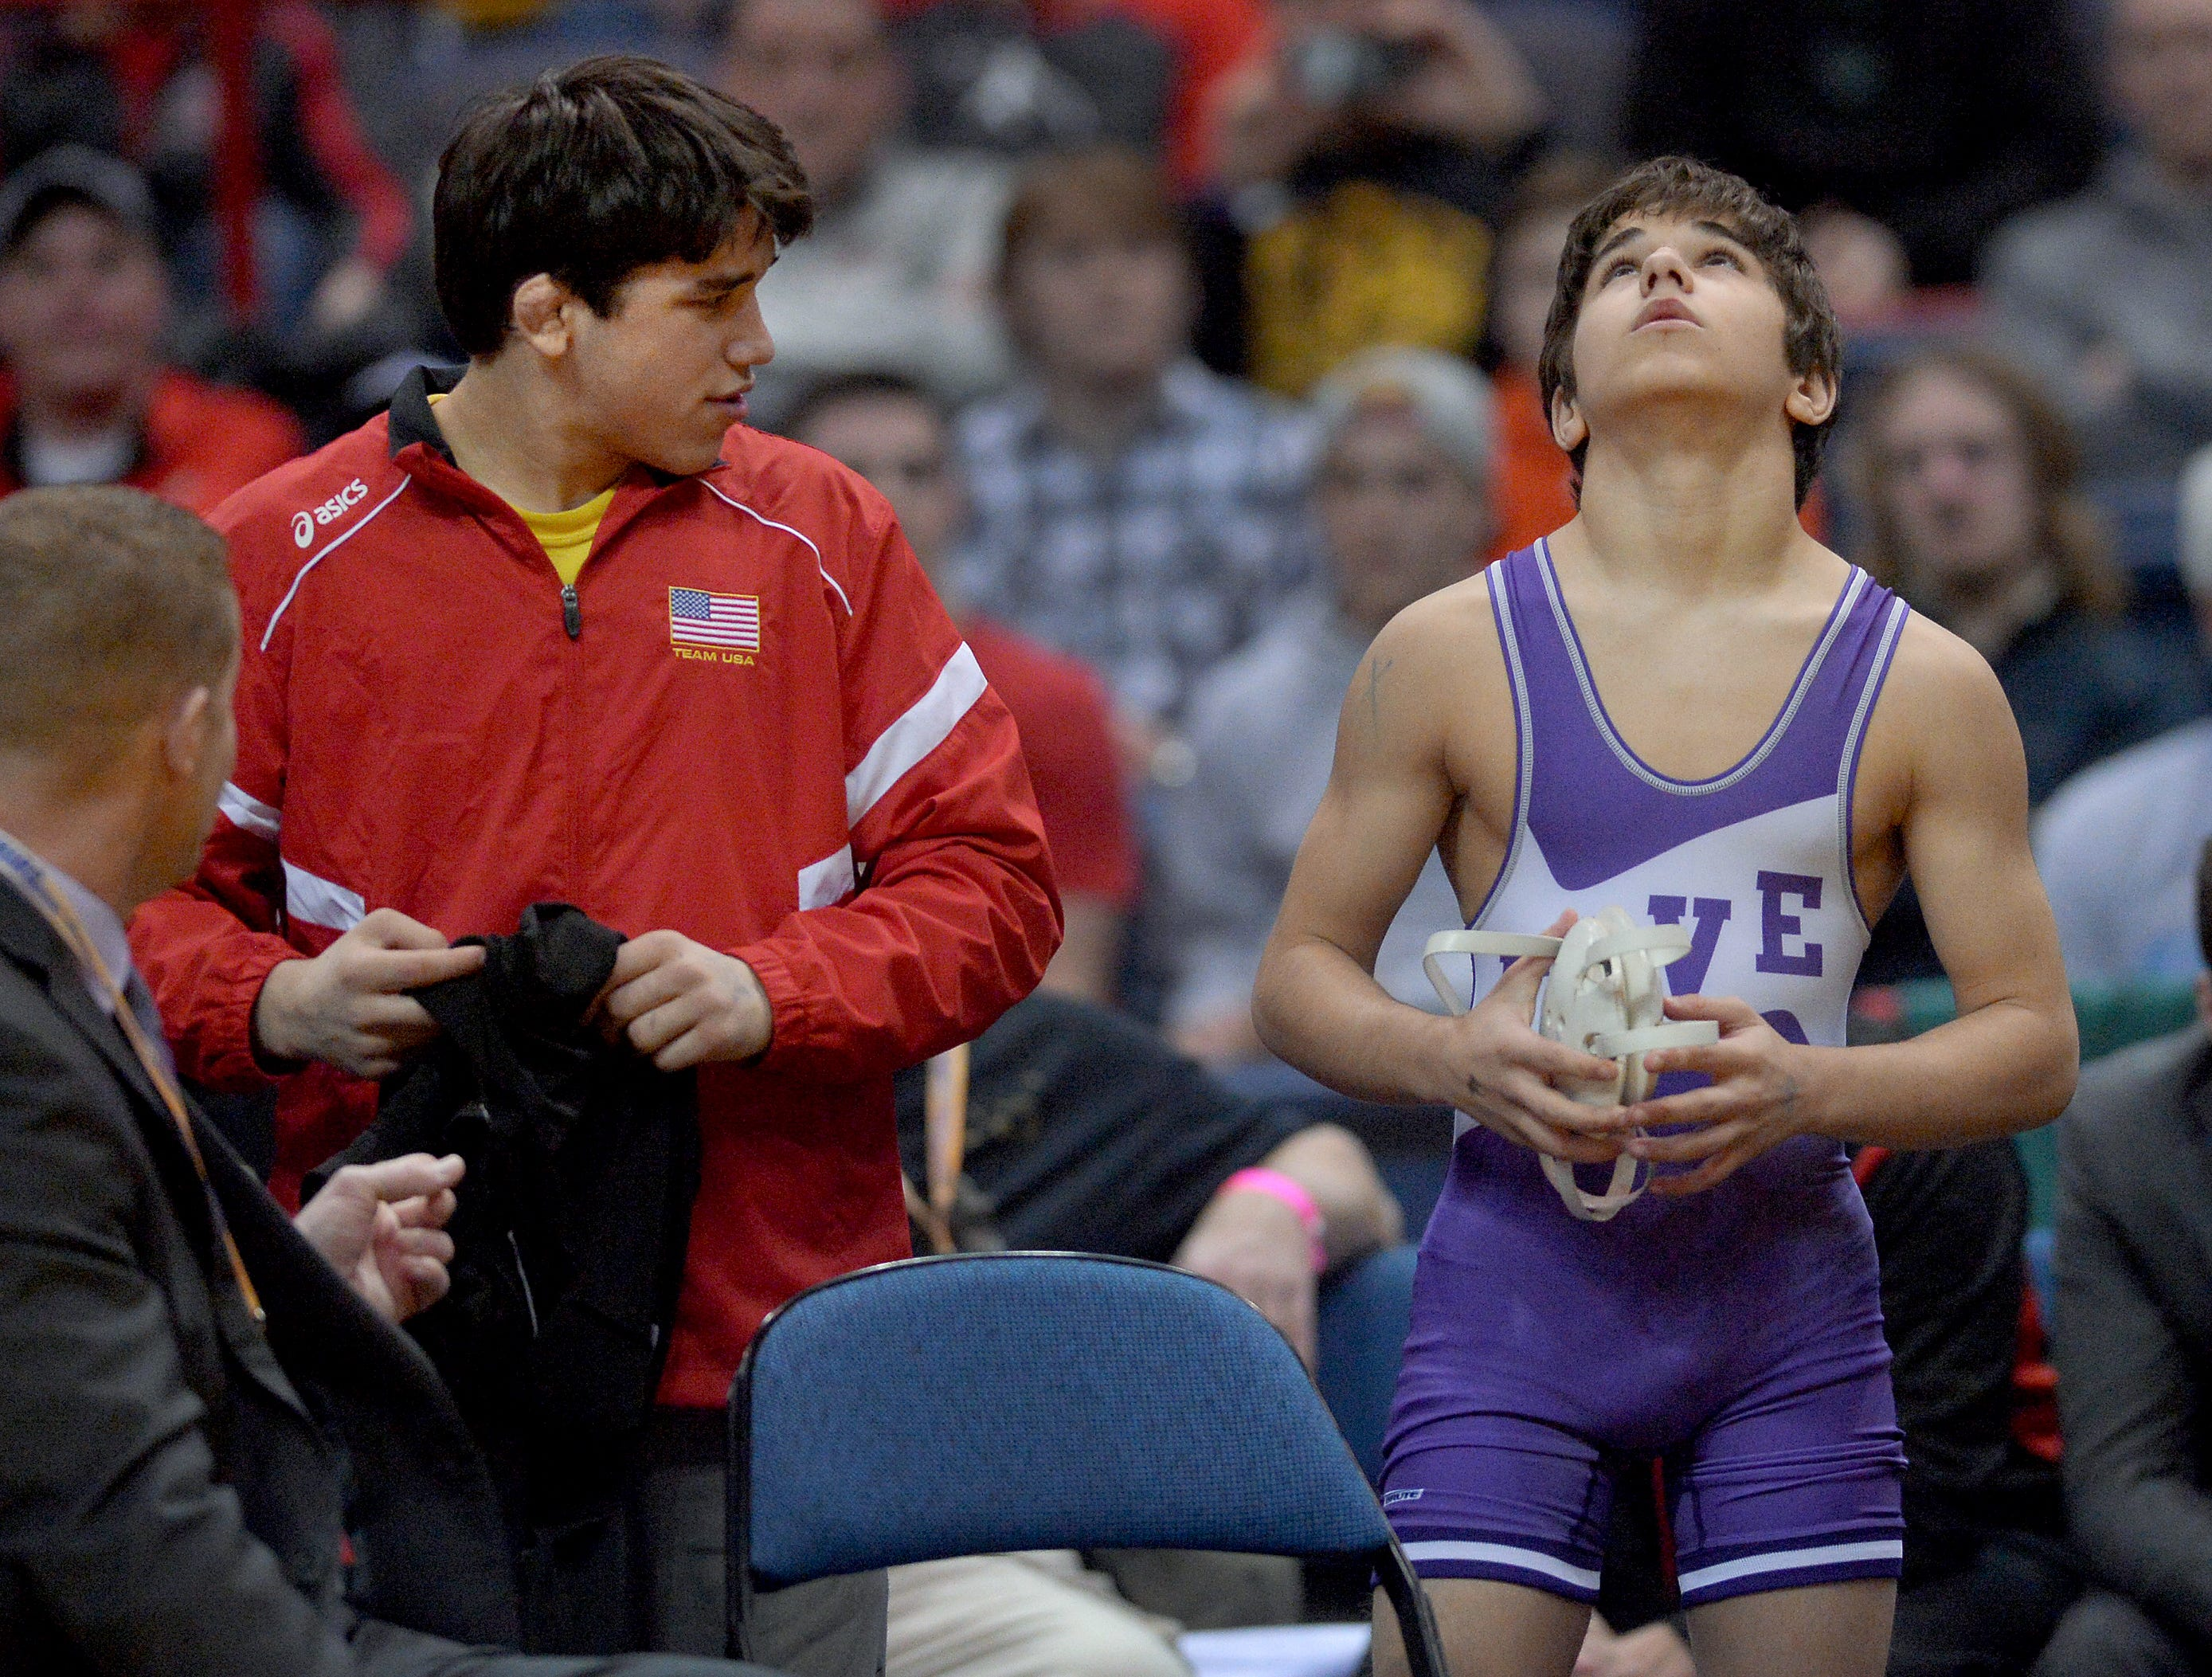 Hilton's Yianni Diakomihalis, left, talks to his brother Greg prior to his match in the finals of the 99-pound class (Division I) during the NYSPHSAA 2016 State Wrestling Championships held at the Times Union Center in Albany, N.Y. on Saturday, Feb. 27, 2016.